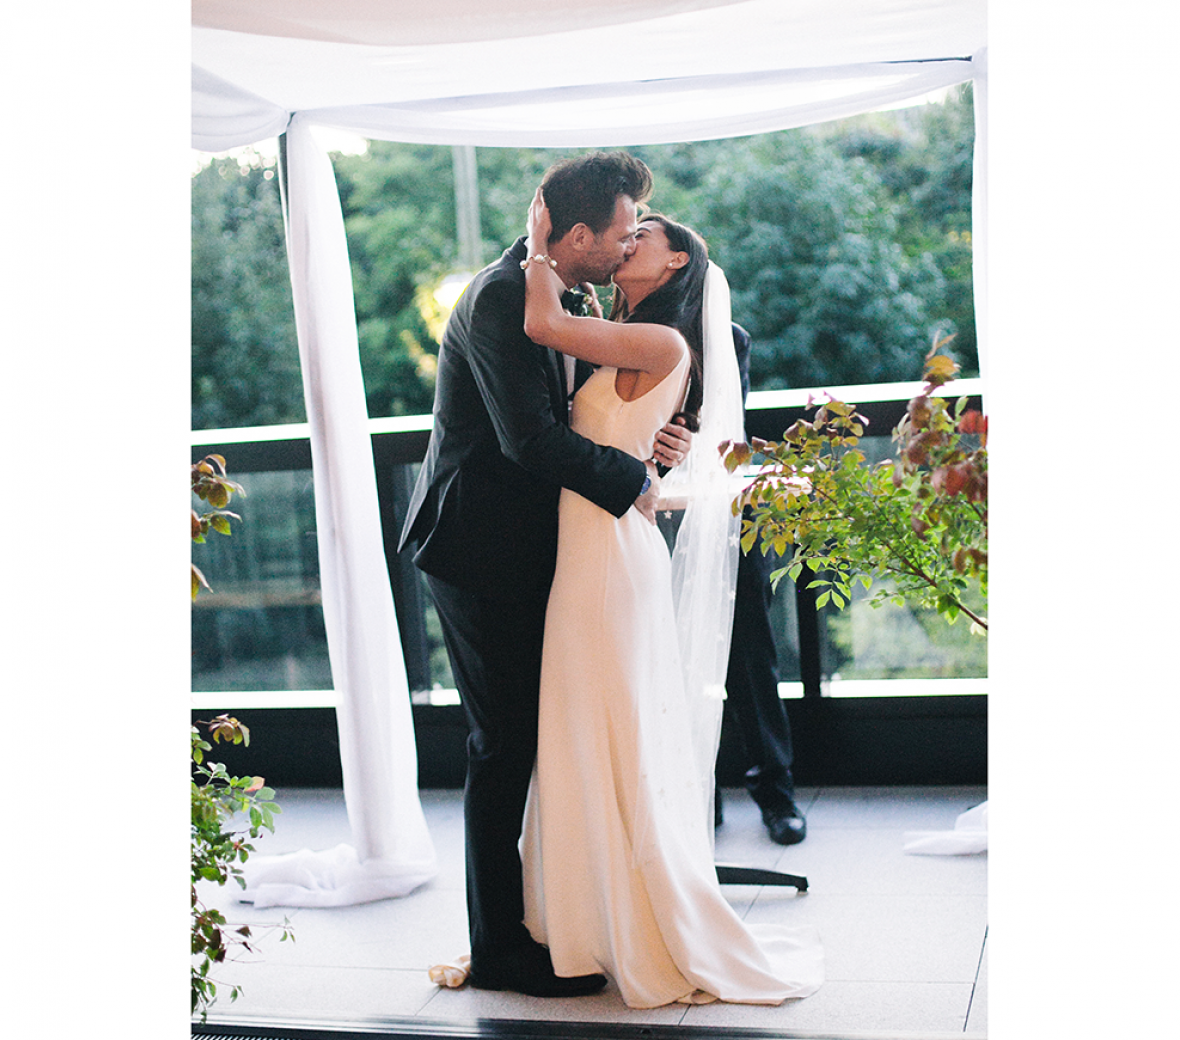 A bride and groom kissing in an outdoor wedding venue.